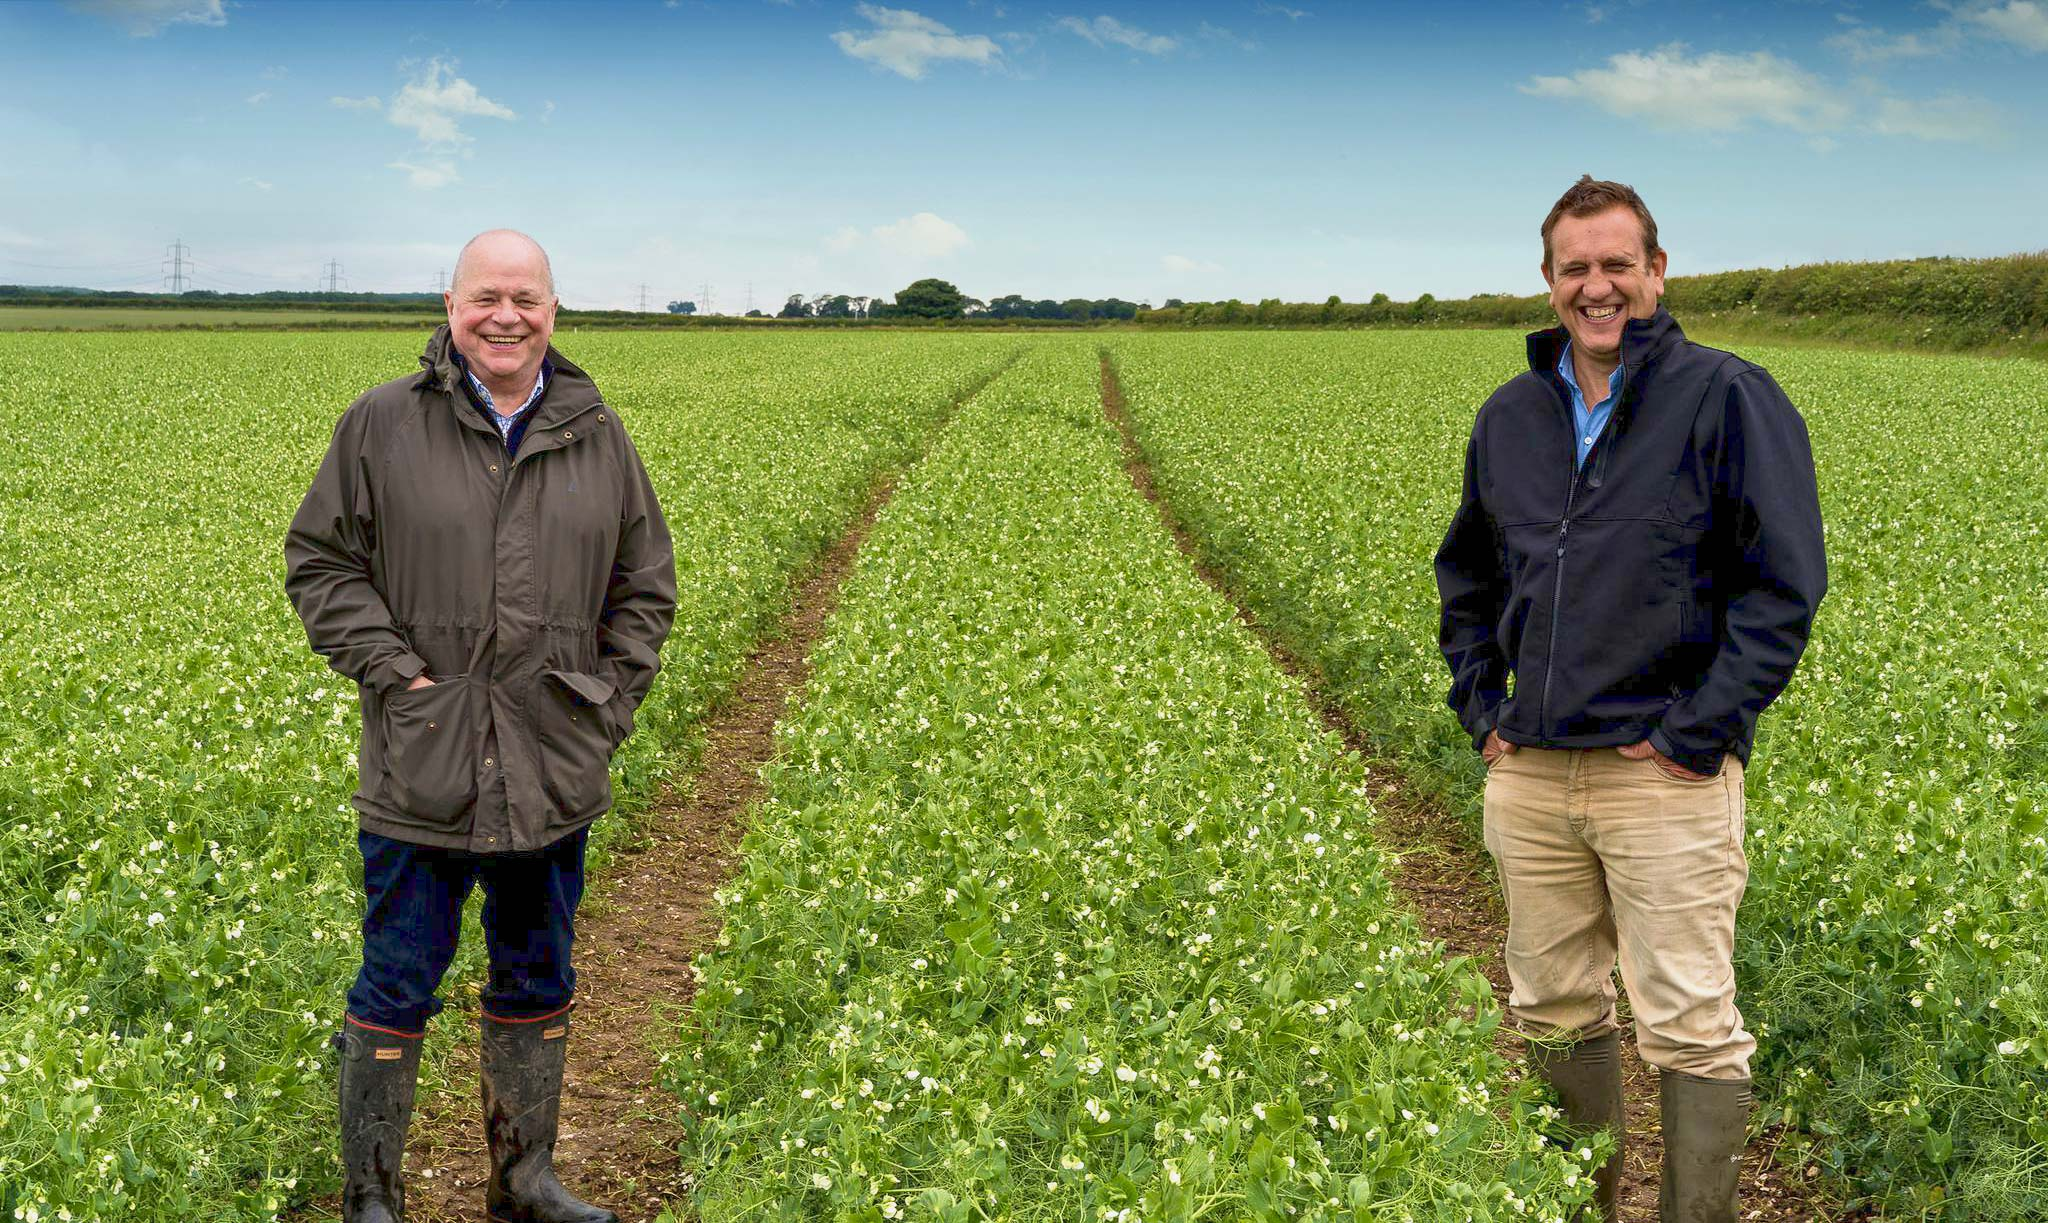 Steve Cann and Paul Rhodes Future Food Solutions